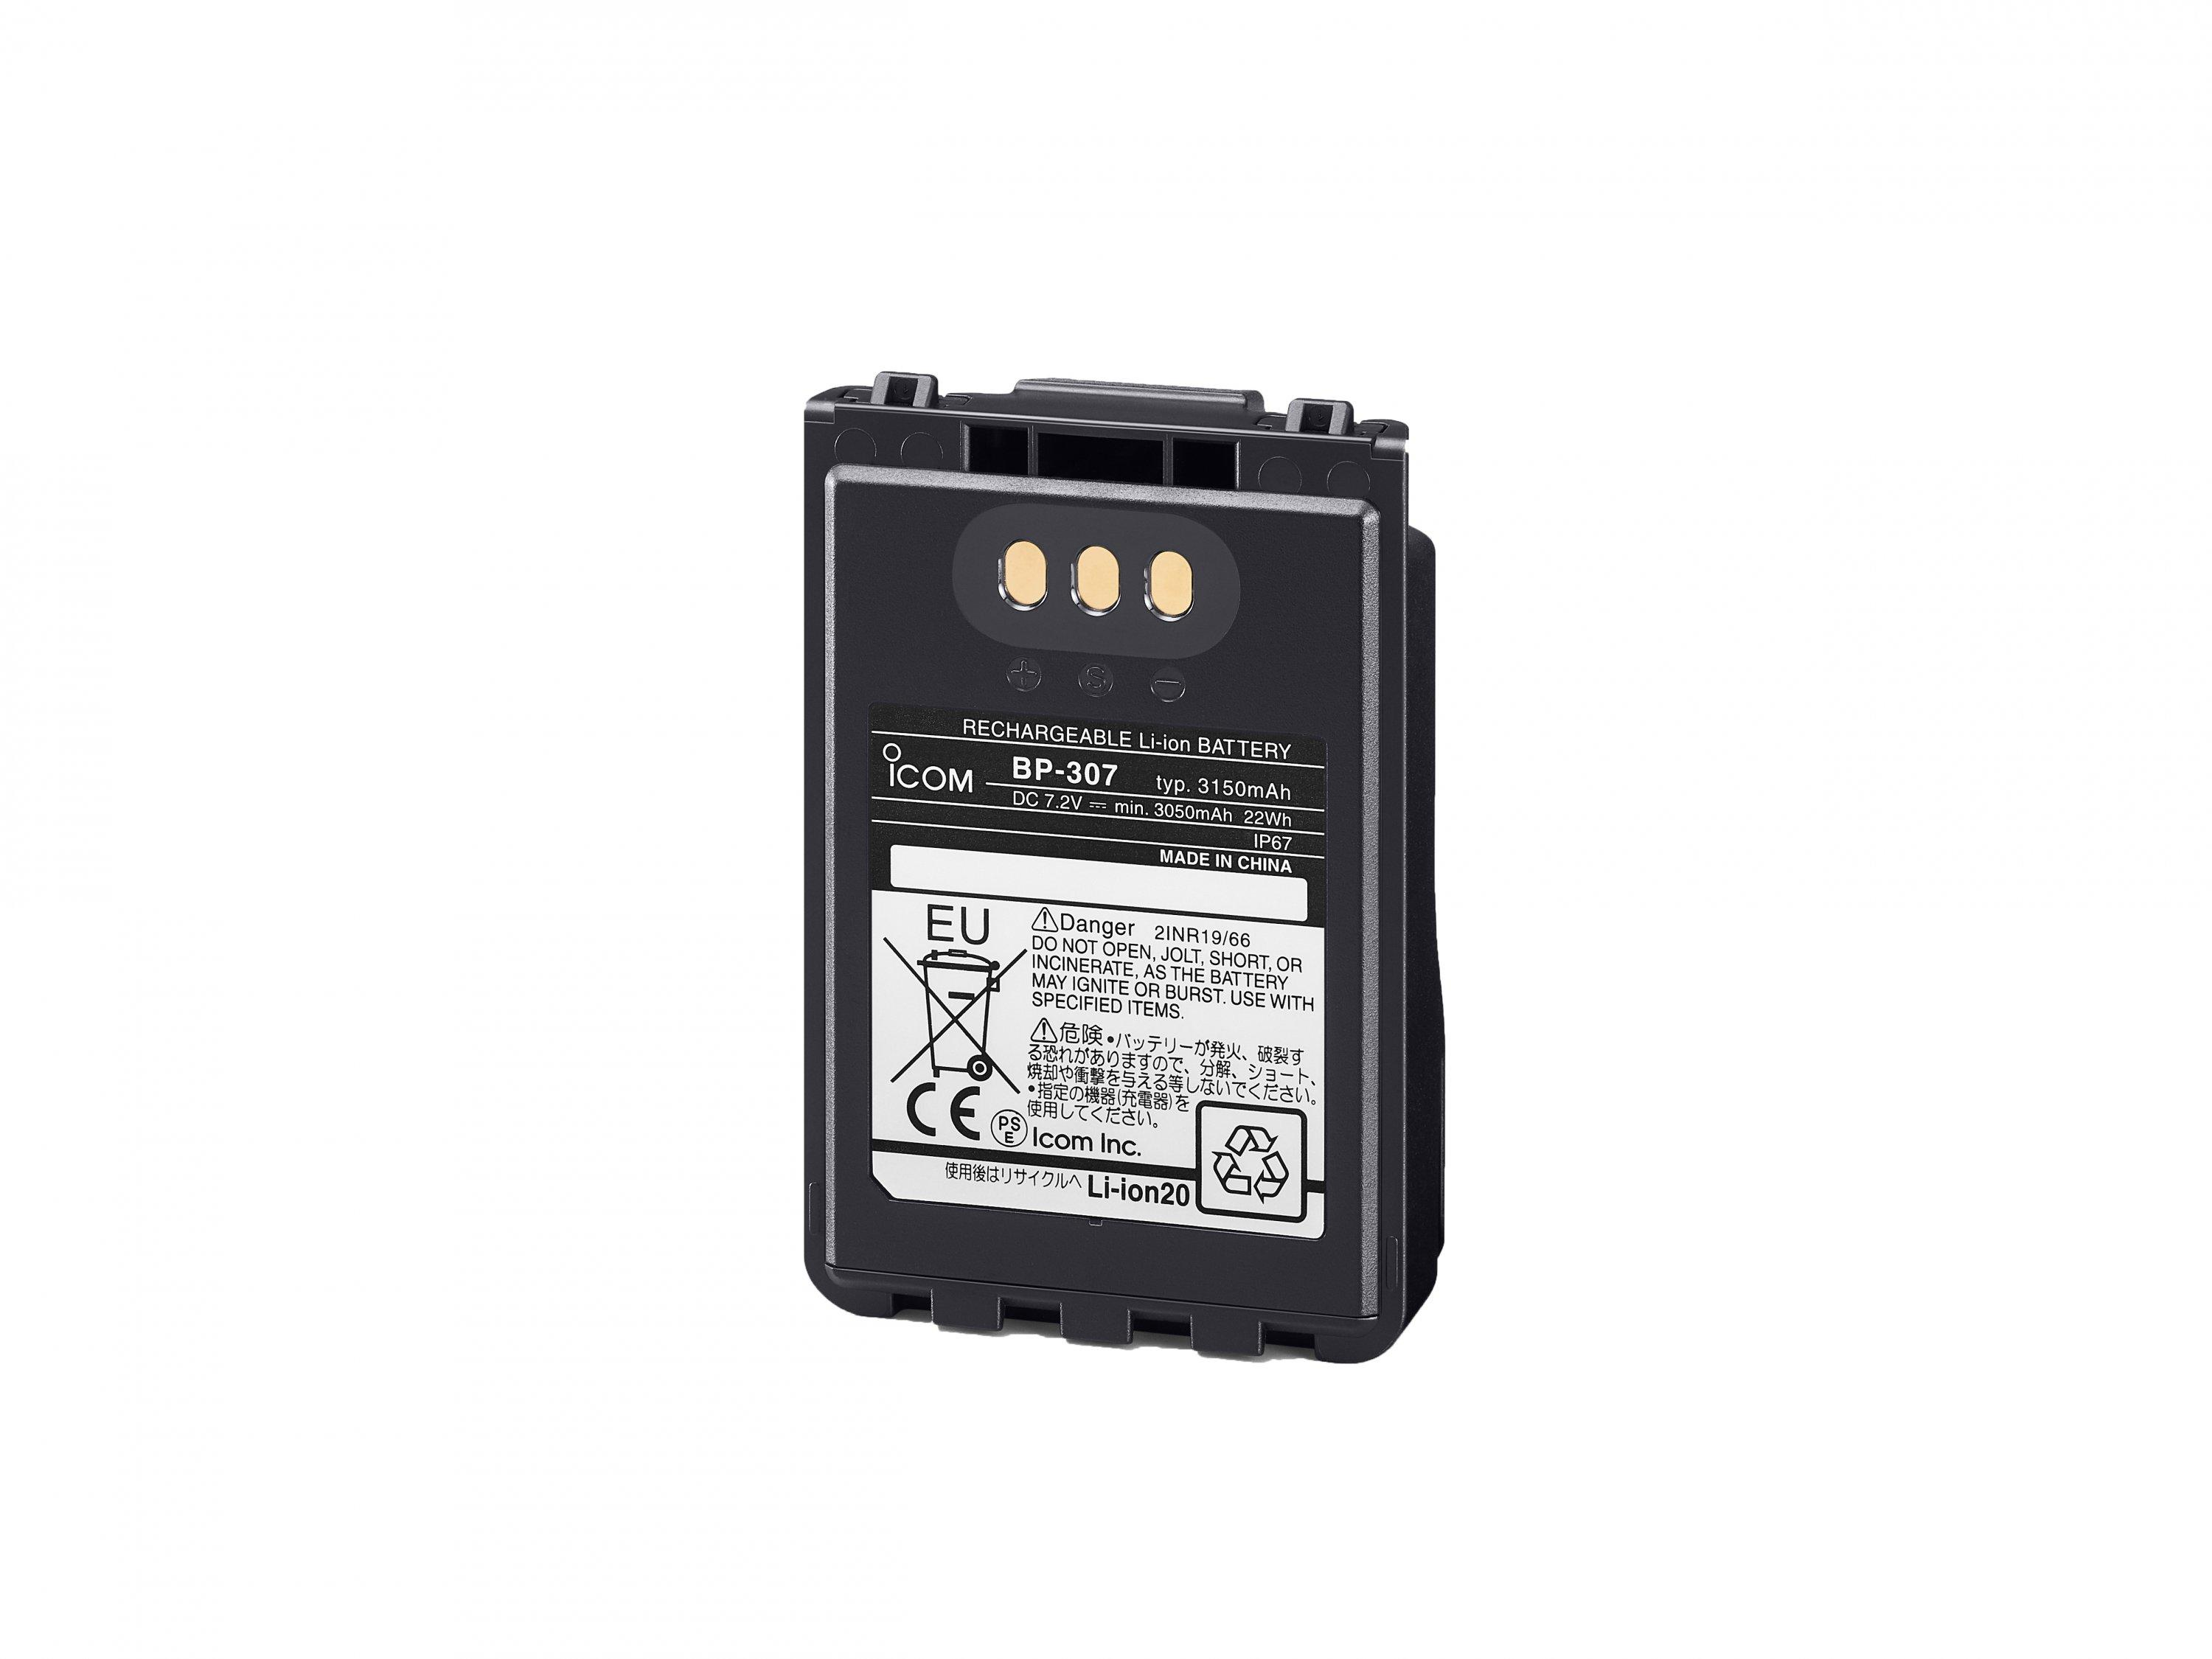 BP-307 LITHIUM ION BATTERY PACK